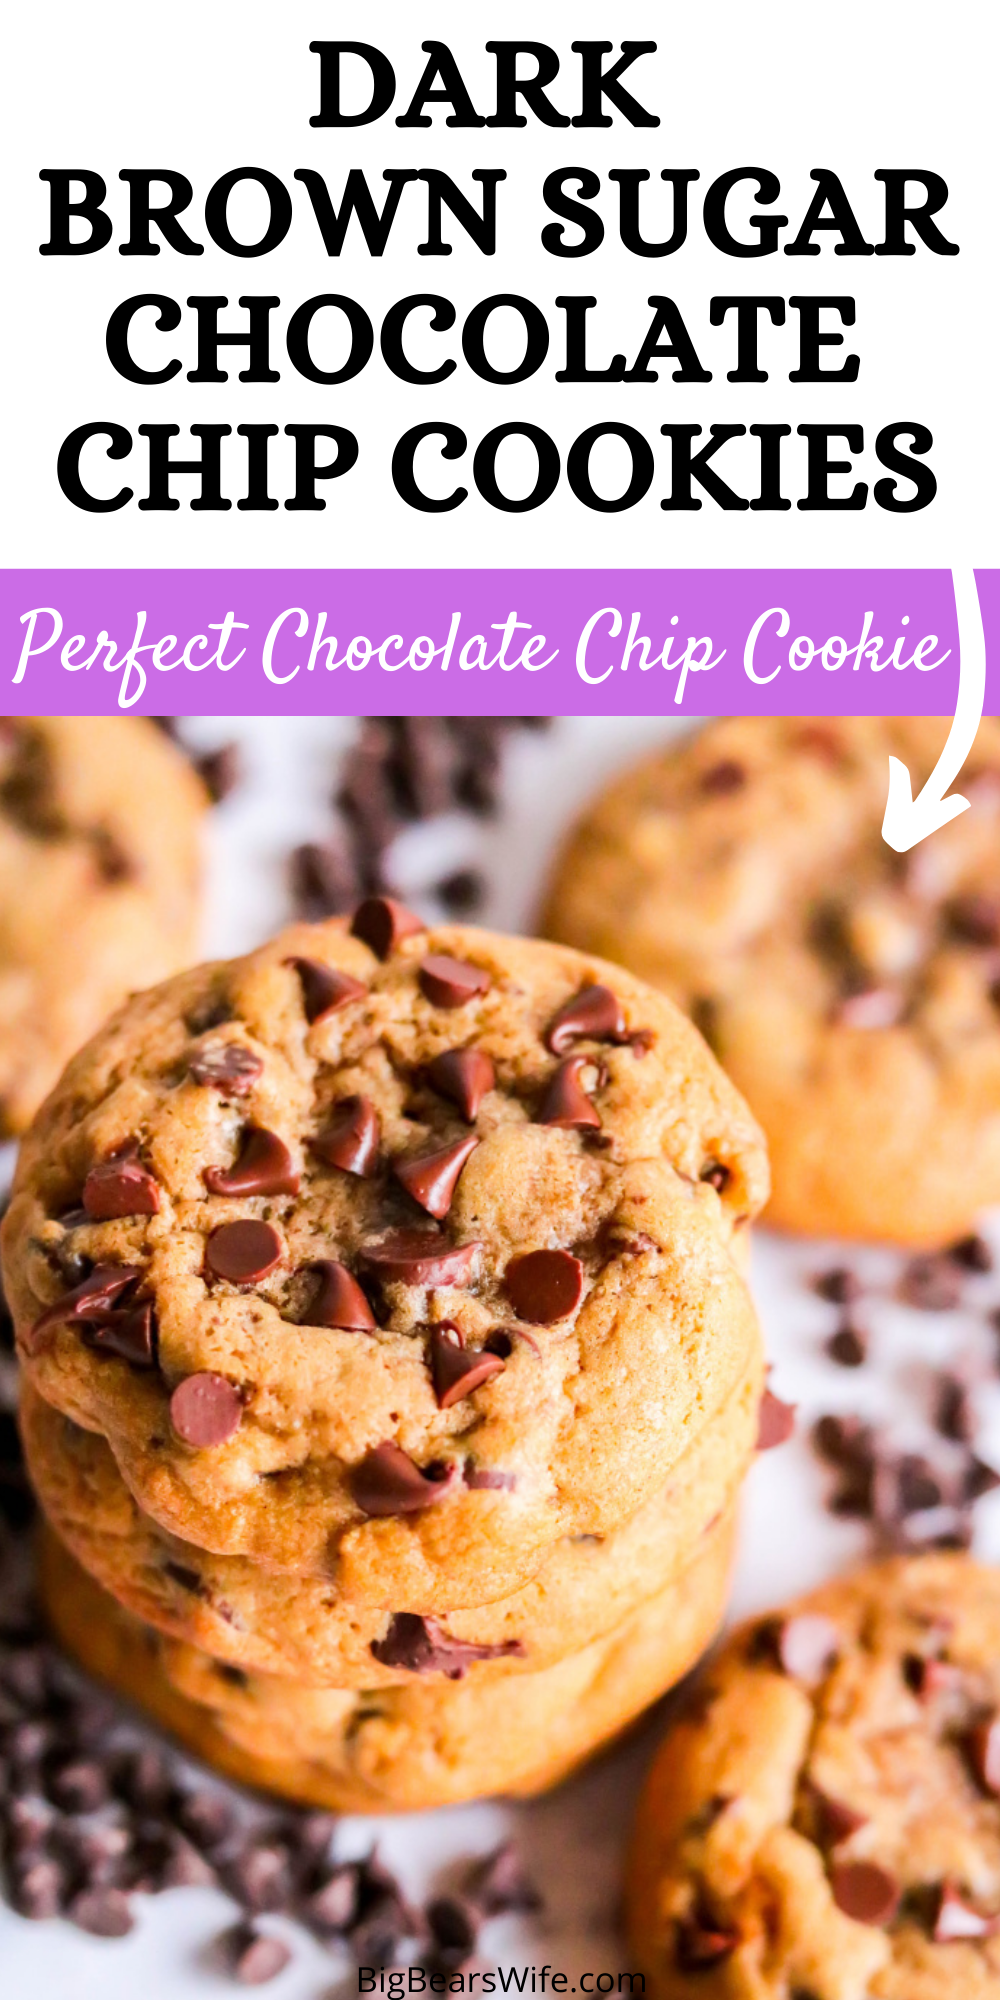 These Dark Brown Sugar Chocolate Chip Cookies might be the best chocolate chip cookie ever. Chilling the dough gives the cookie a soft and chewy texture and they're packed tons of chocolate chips!  via @bigbearswife